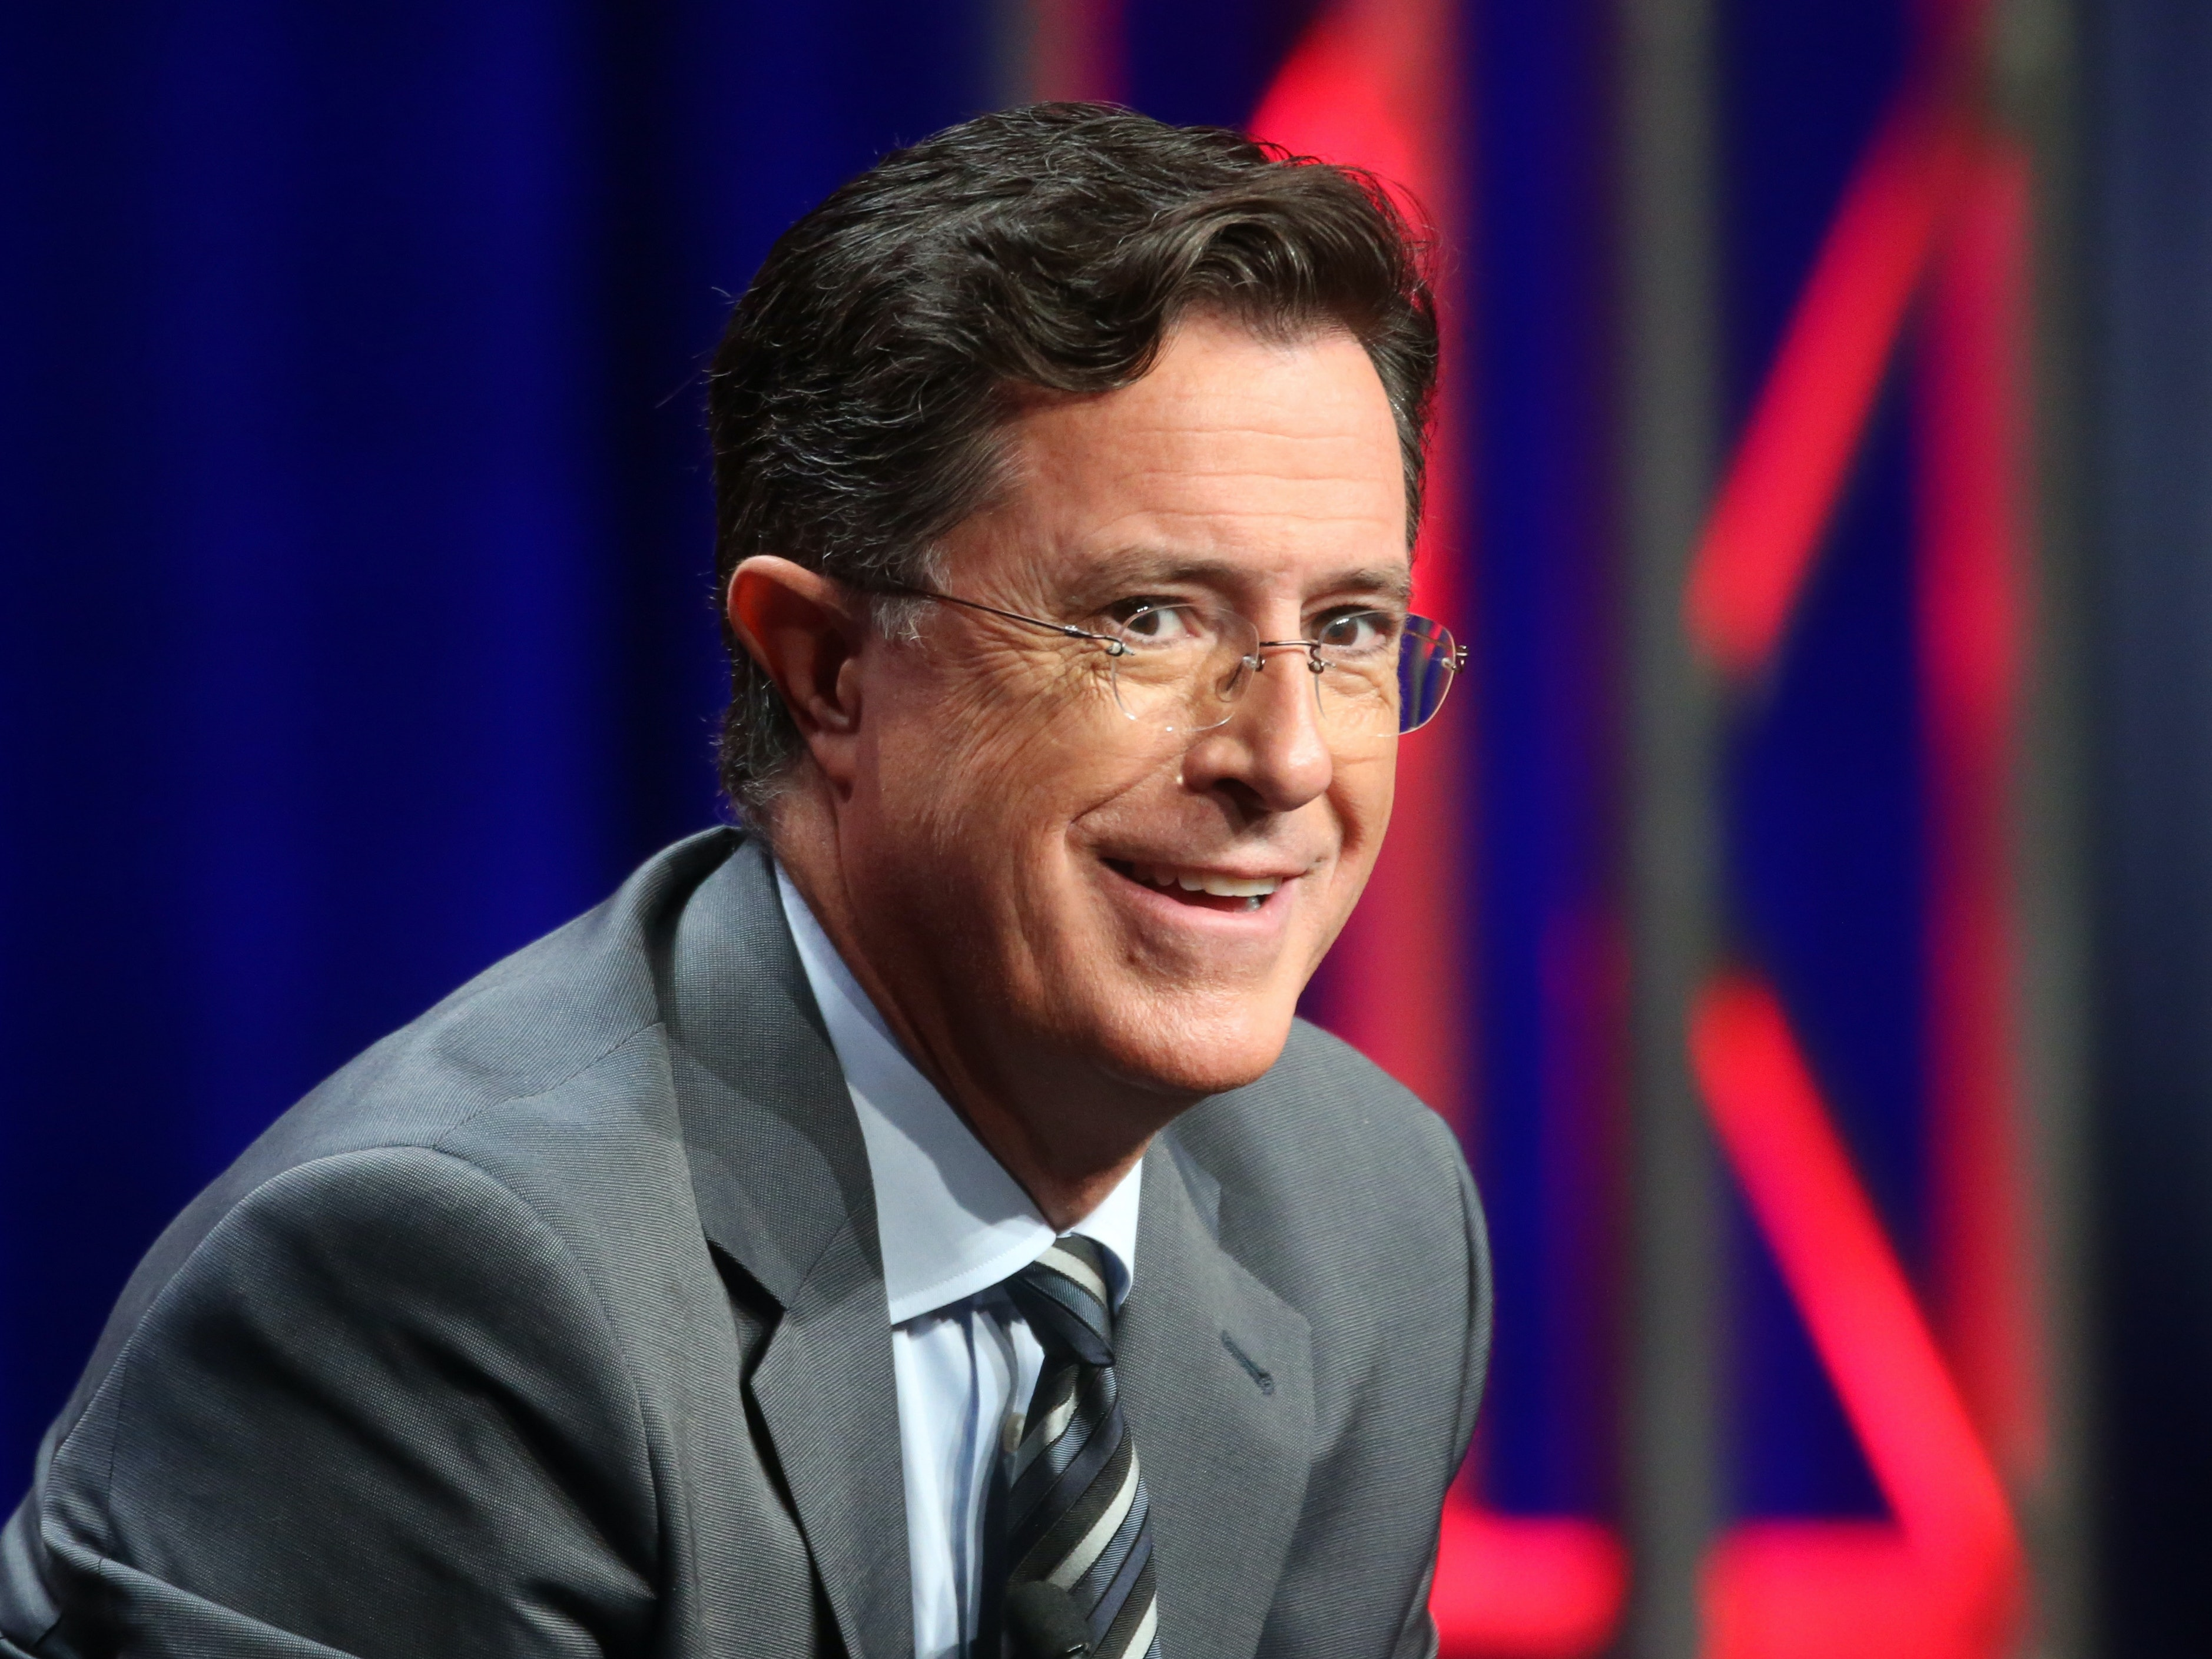 With Hosts Being Nice to One Other, Late-Night TV Has Reached Peak Lameness